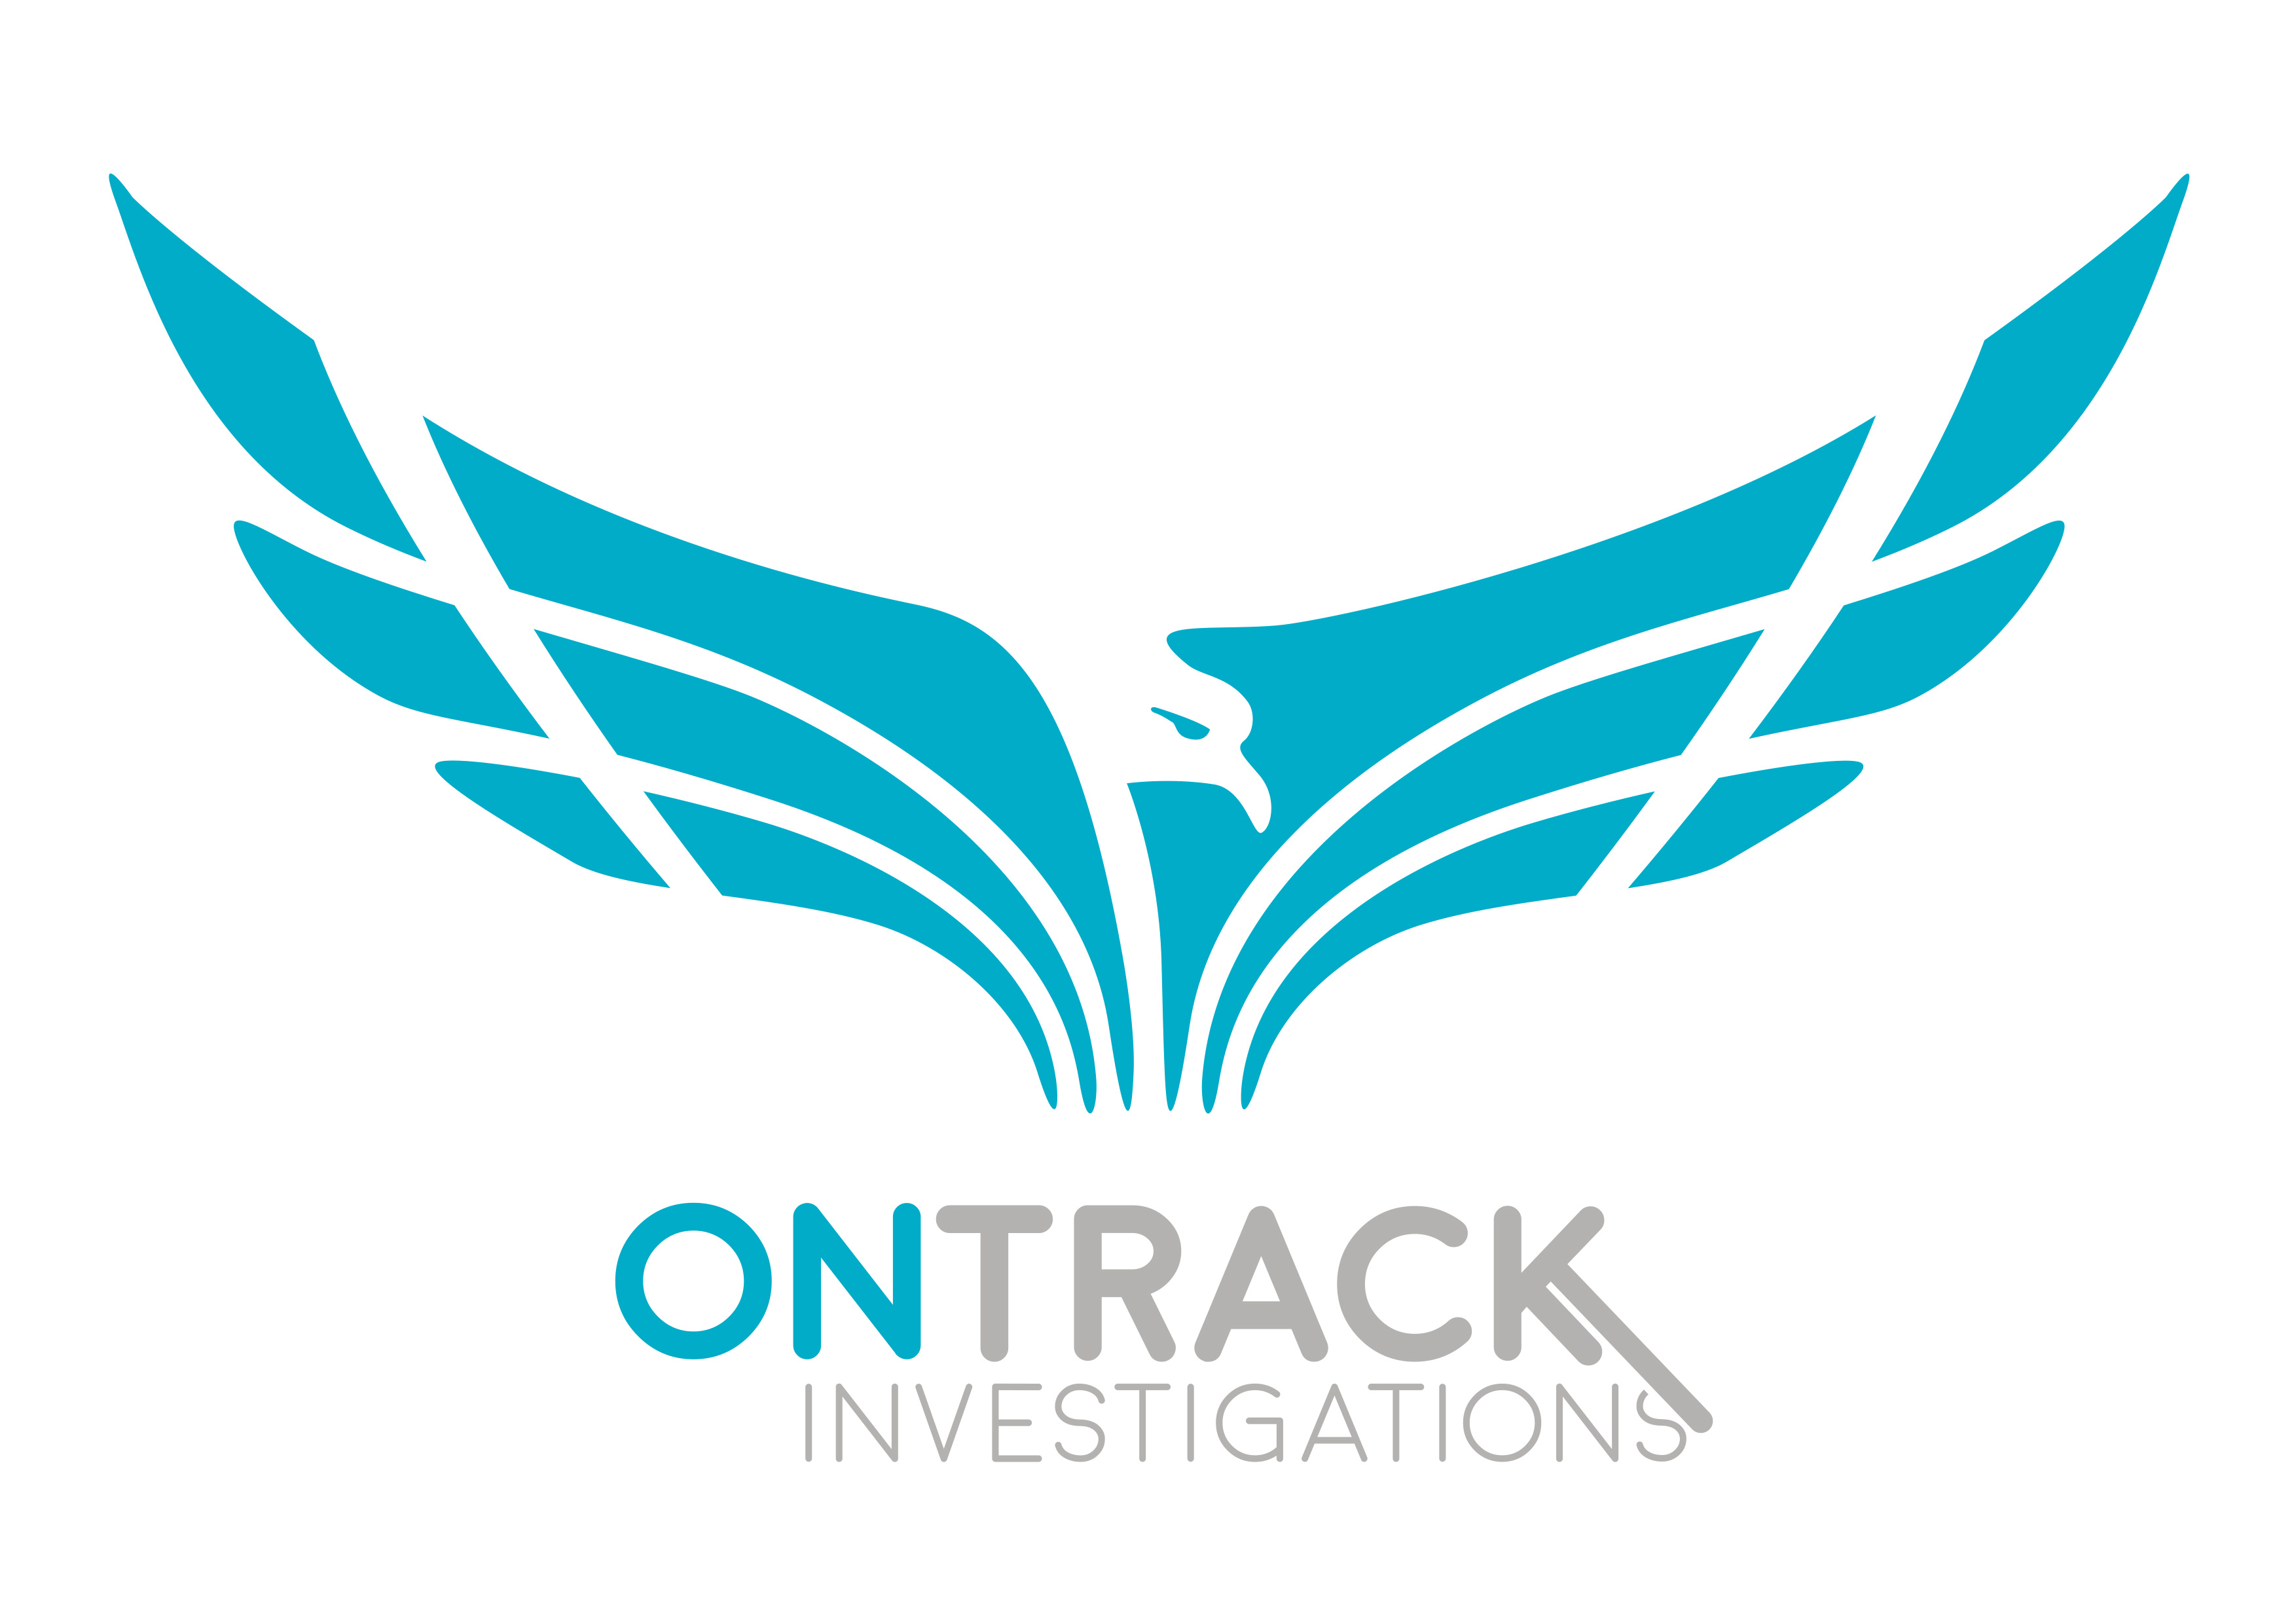 On Track Investigations